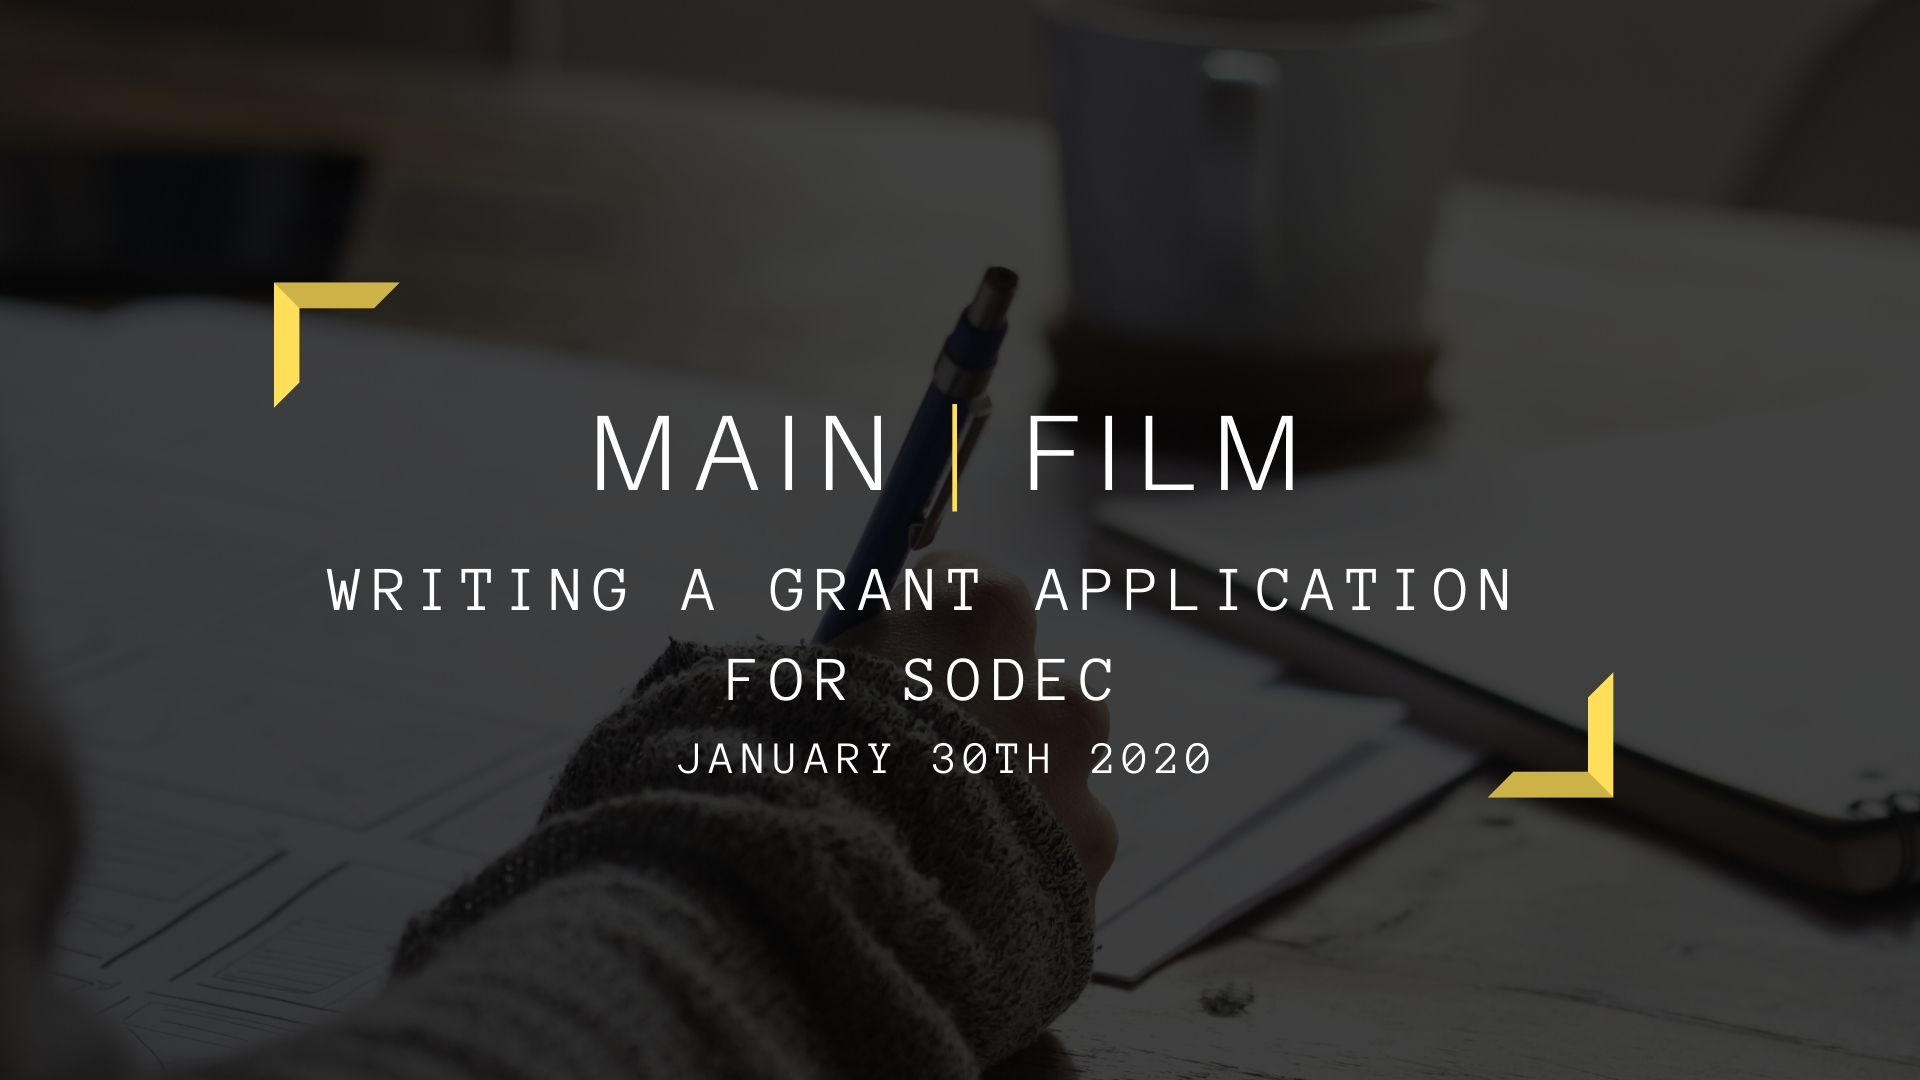 Writing a grant application for SODEC